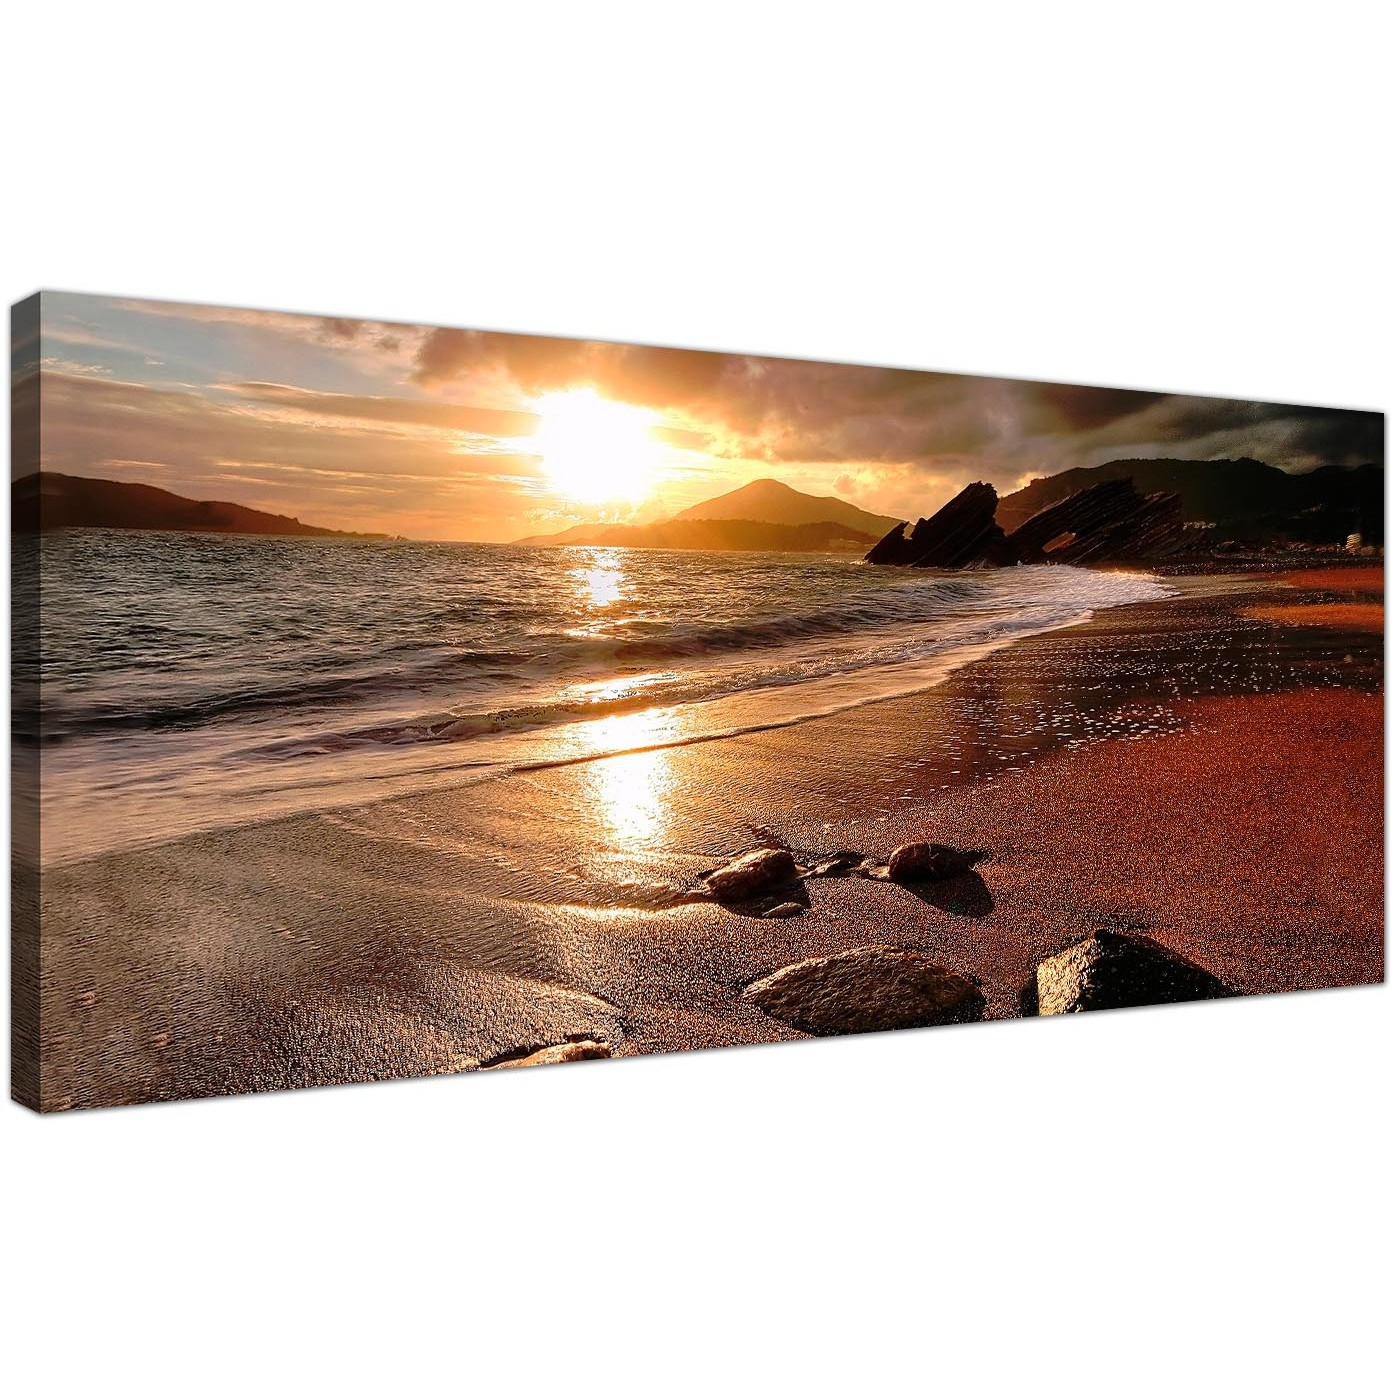 Wide Canvas Prints Of A Beach Sunset For Your Living Room Inside Most Up To Date Panoramic Canvas Wall Art (Gallery 2 of 15)